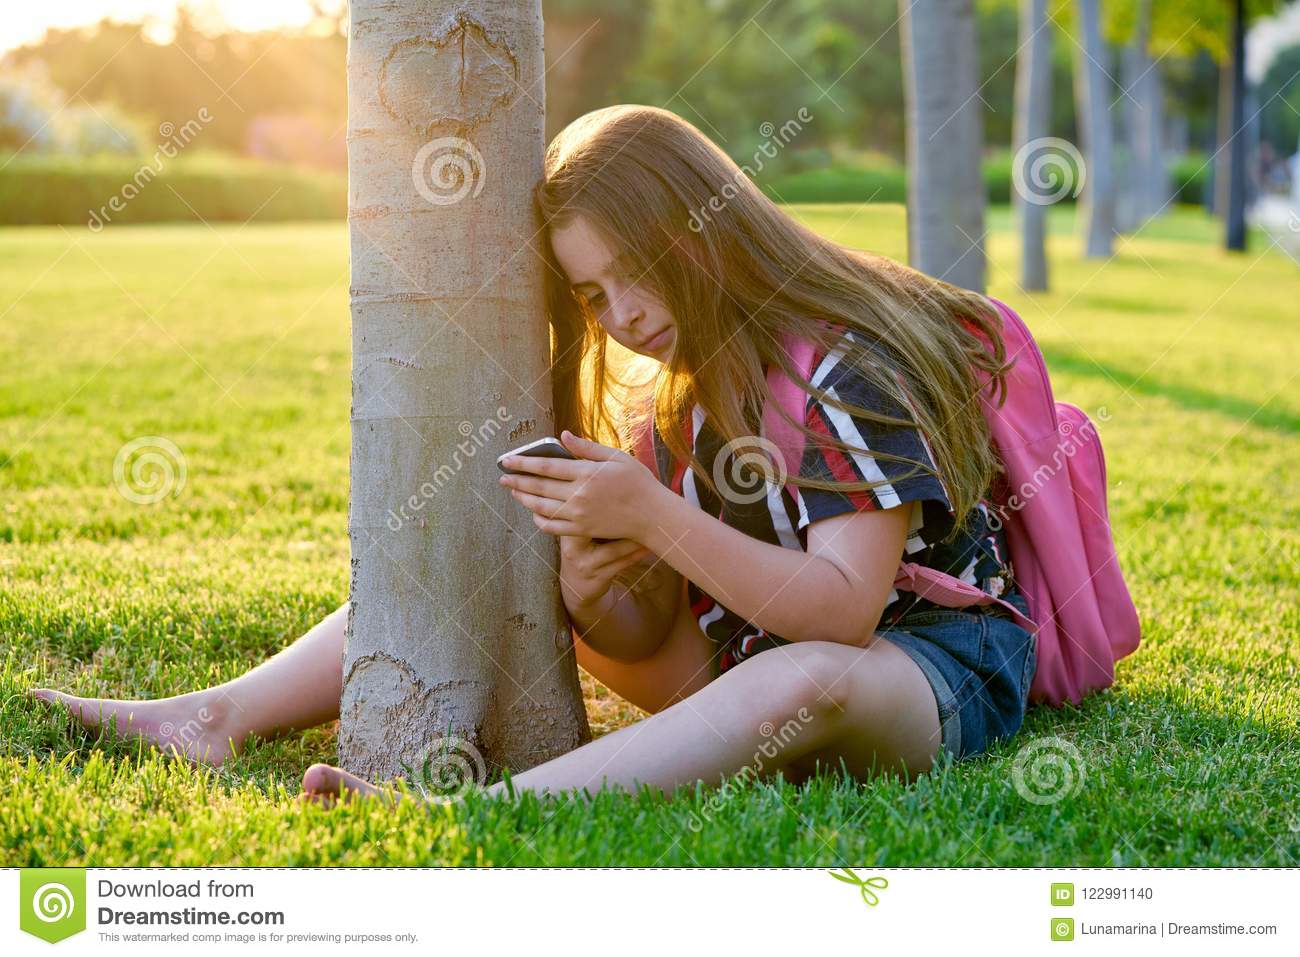 https://thumbs.dreamstime.com/z/blond-student-kid-girl-smartphone-park-back-to-school-sit-grass-blond-student-kid-girl-smartphone-park-122991140.jpg